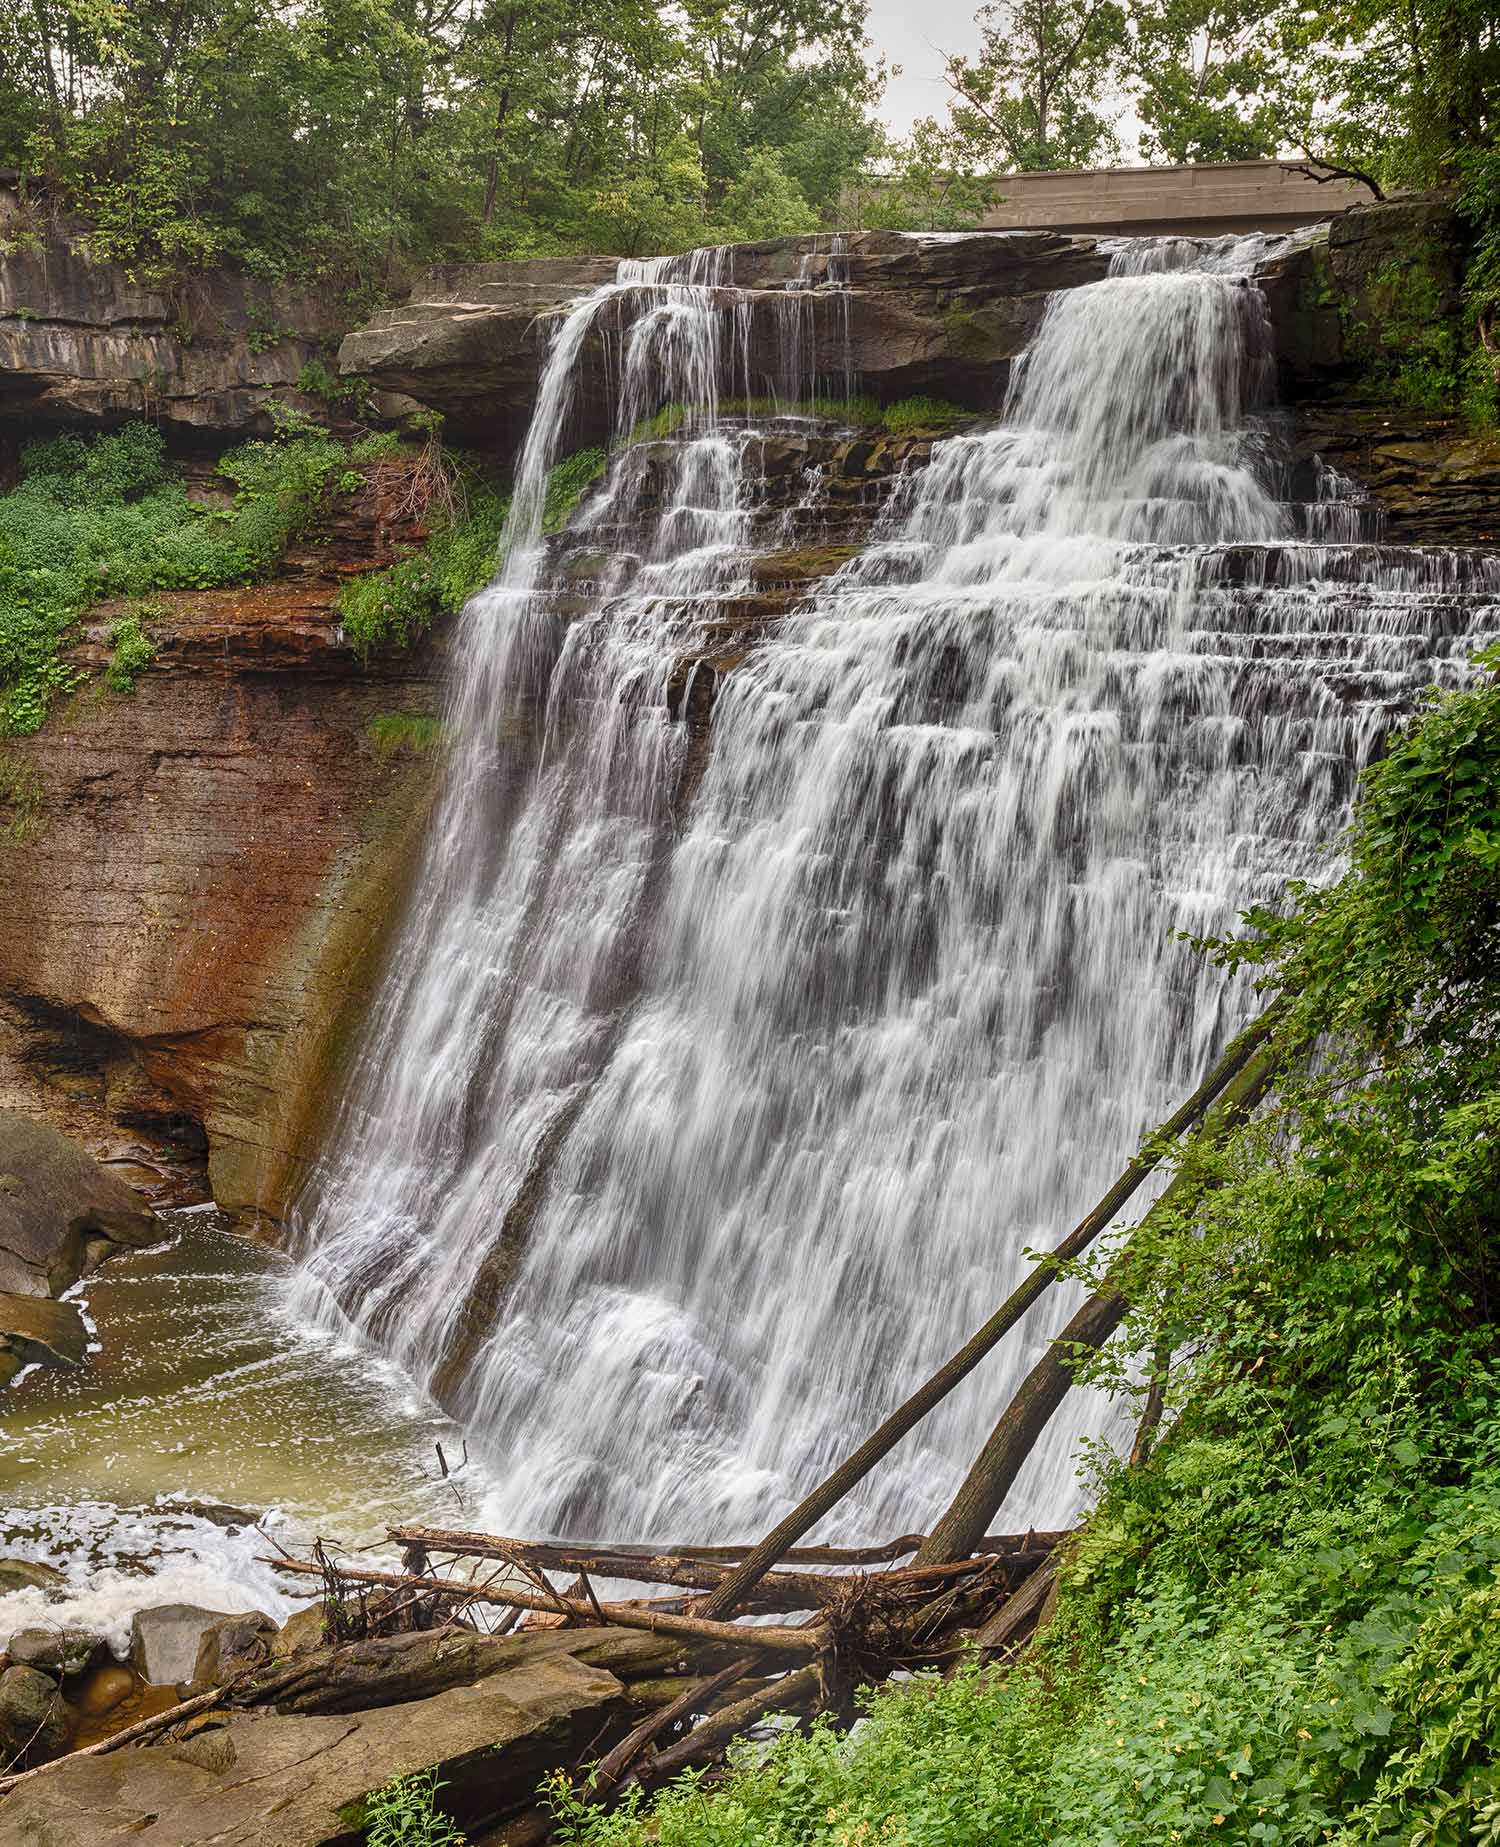 Brandywine Falls located in the Cuyahoga Valley National Park.